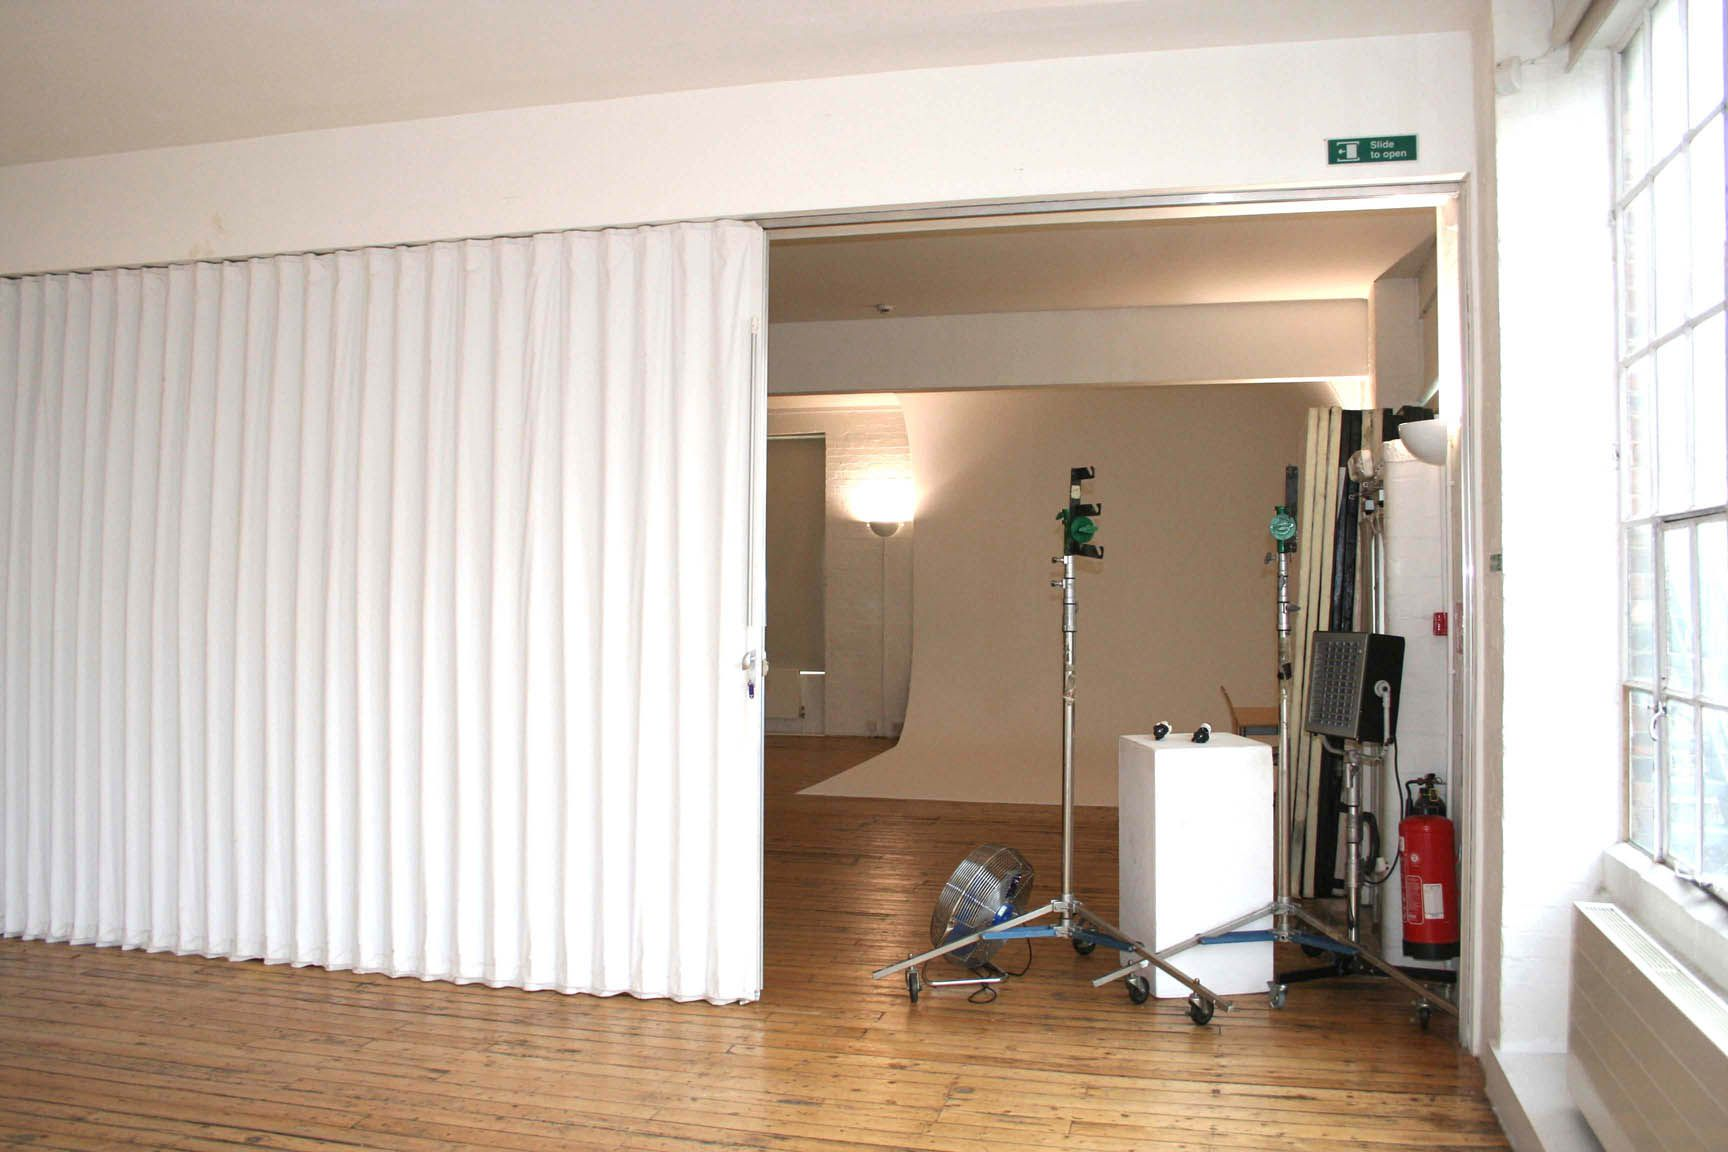 Modern Sliding Door For Home Depot Room Dividers Fake Walls Room Divider Walls Room Divider Curtain